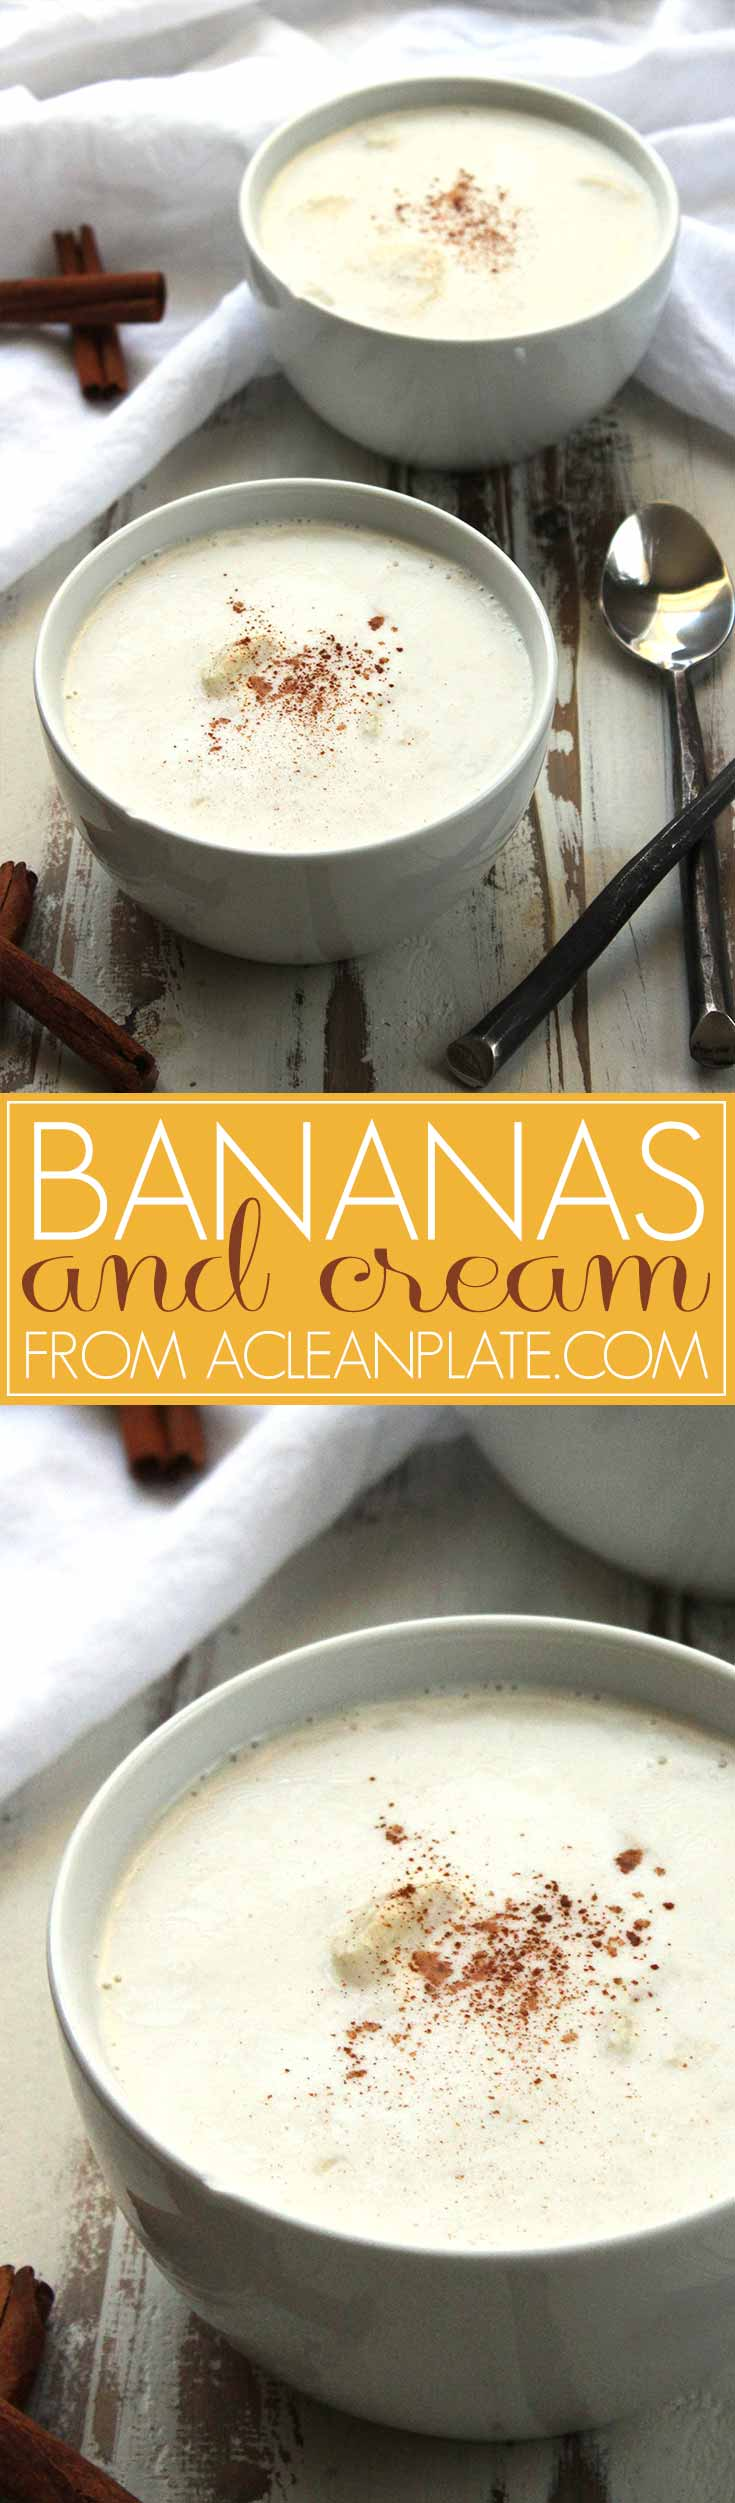 Healthy Dairy-Free Bananas and Cream dessert recipe from acleanplate.com